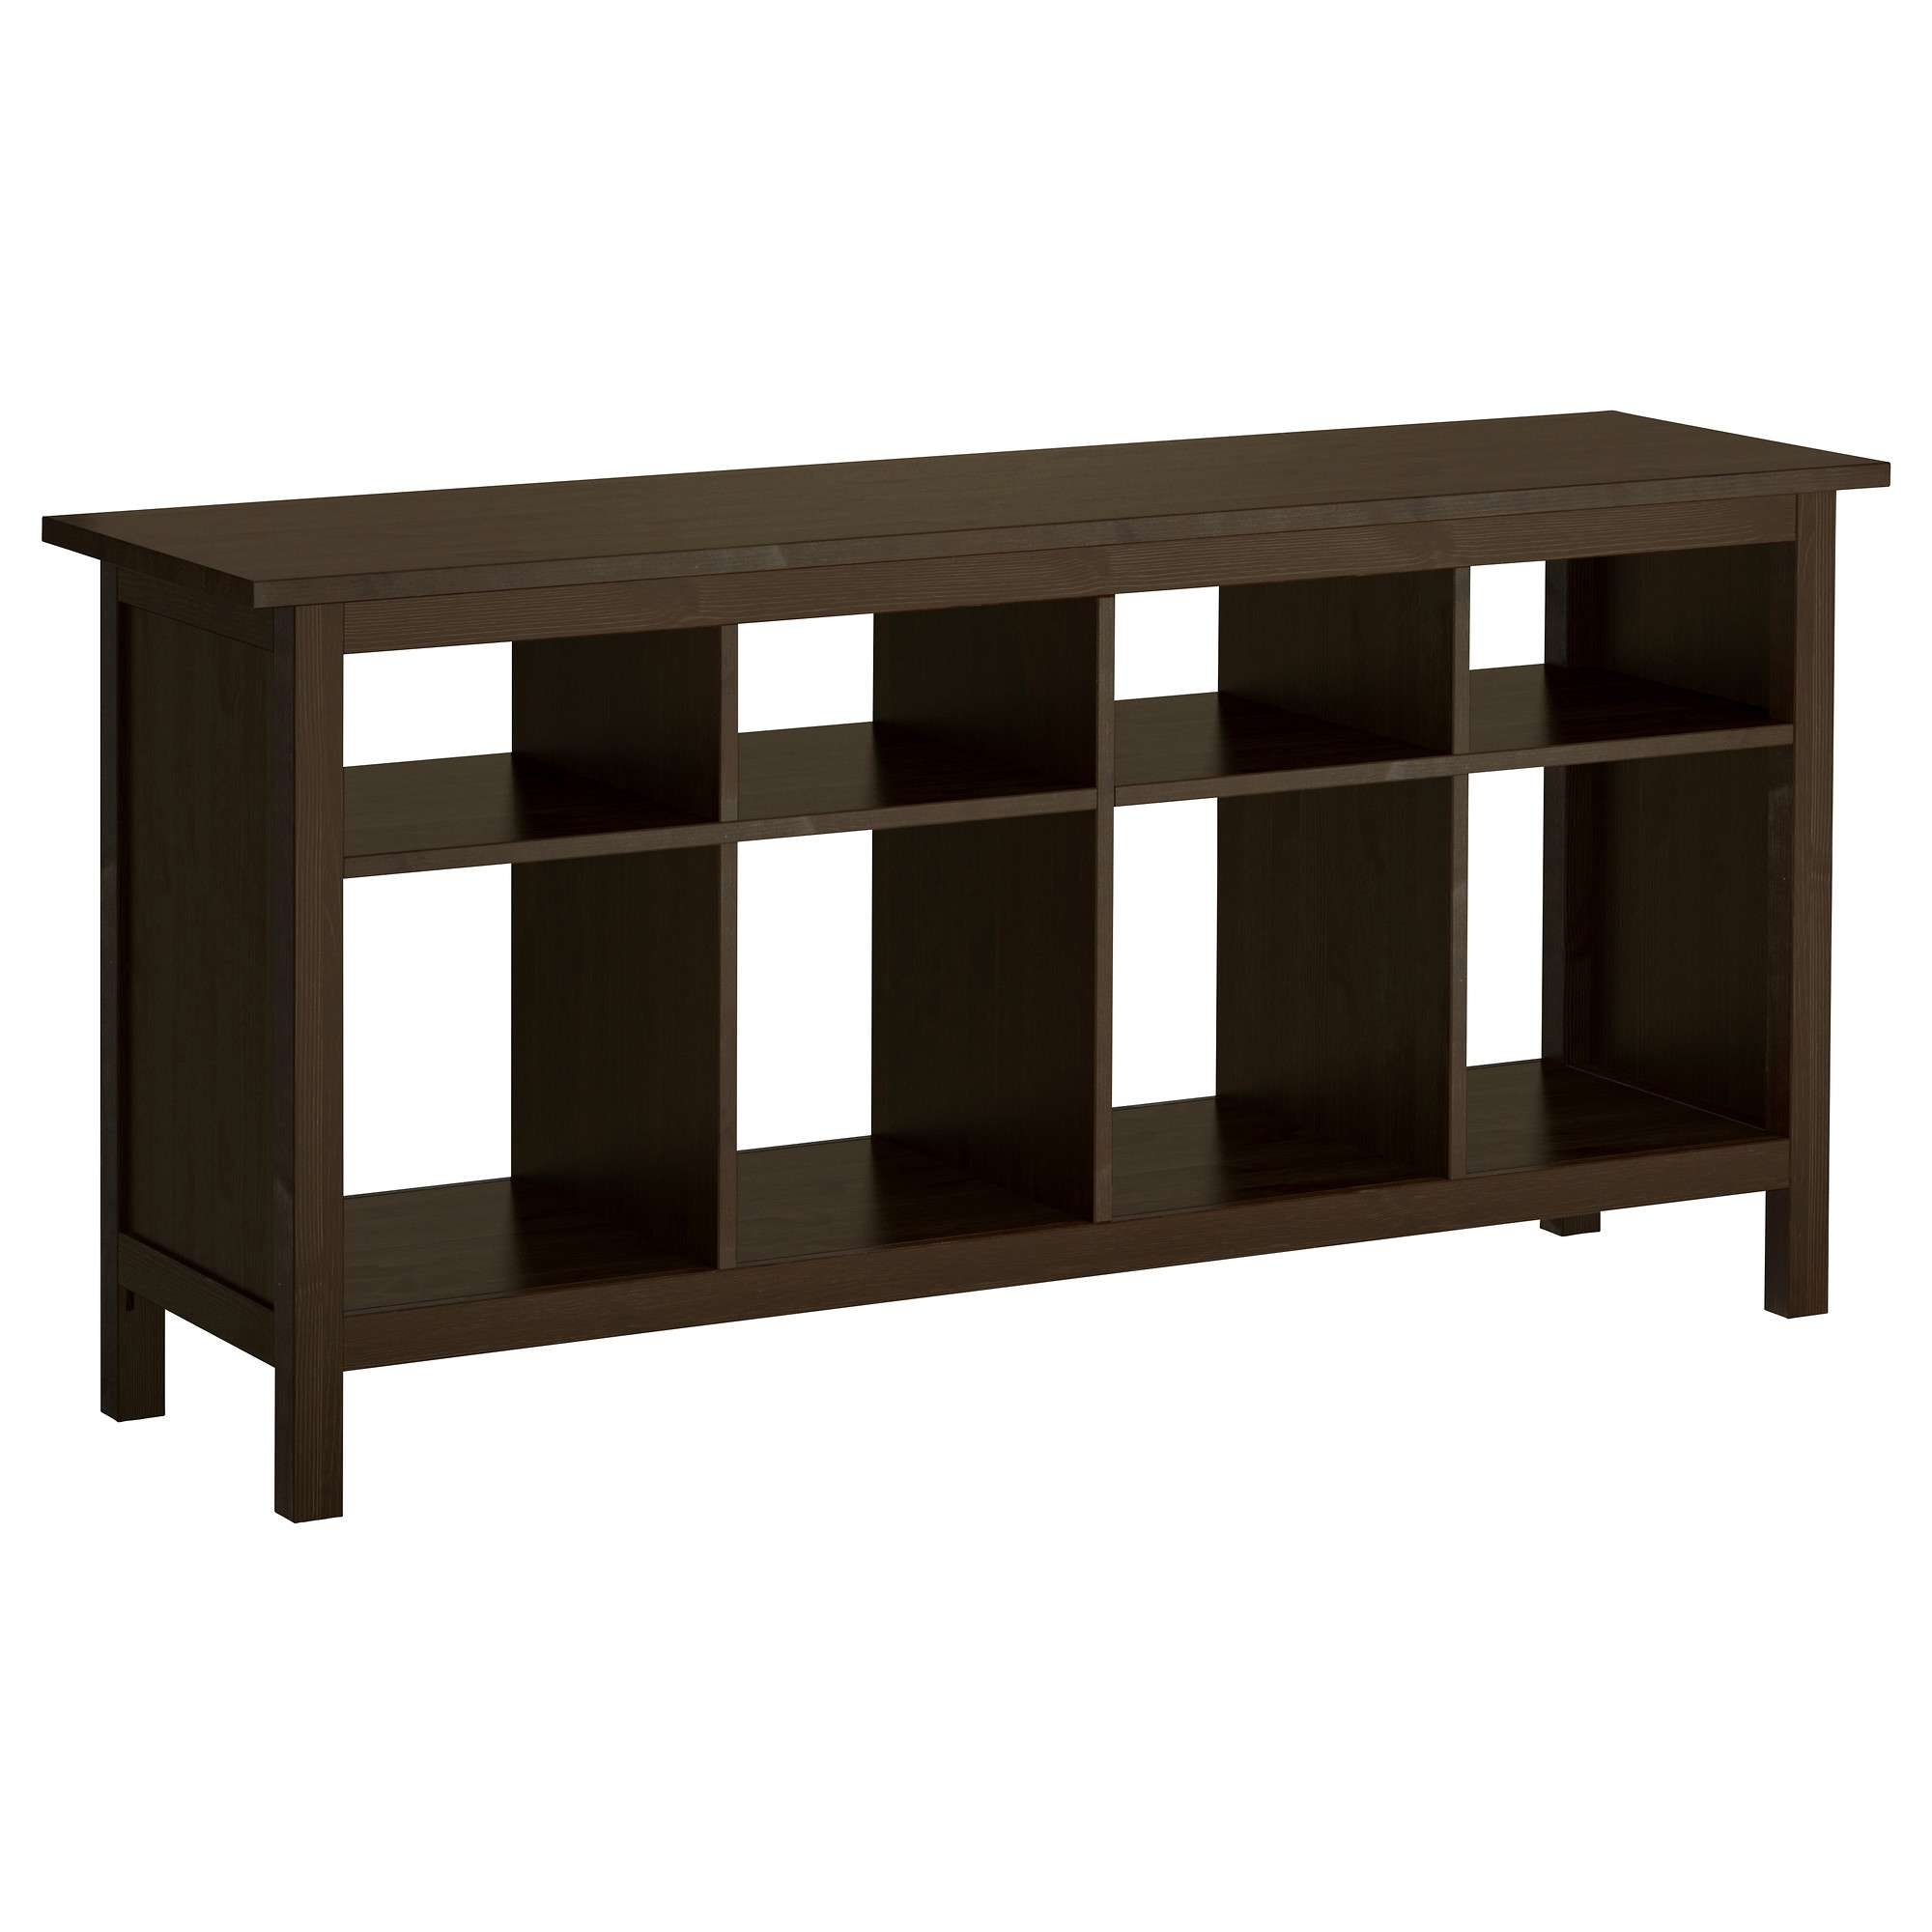 Console Tables, Sofa Tables & Sideboards – Ikea Regarding 36 Inch Sideboards (View 13 of 20)